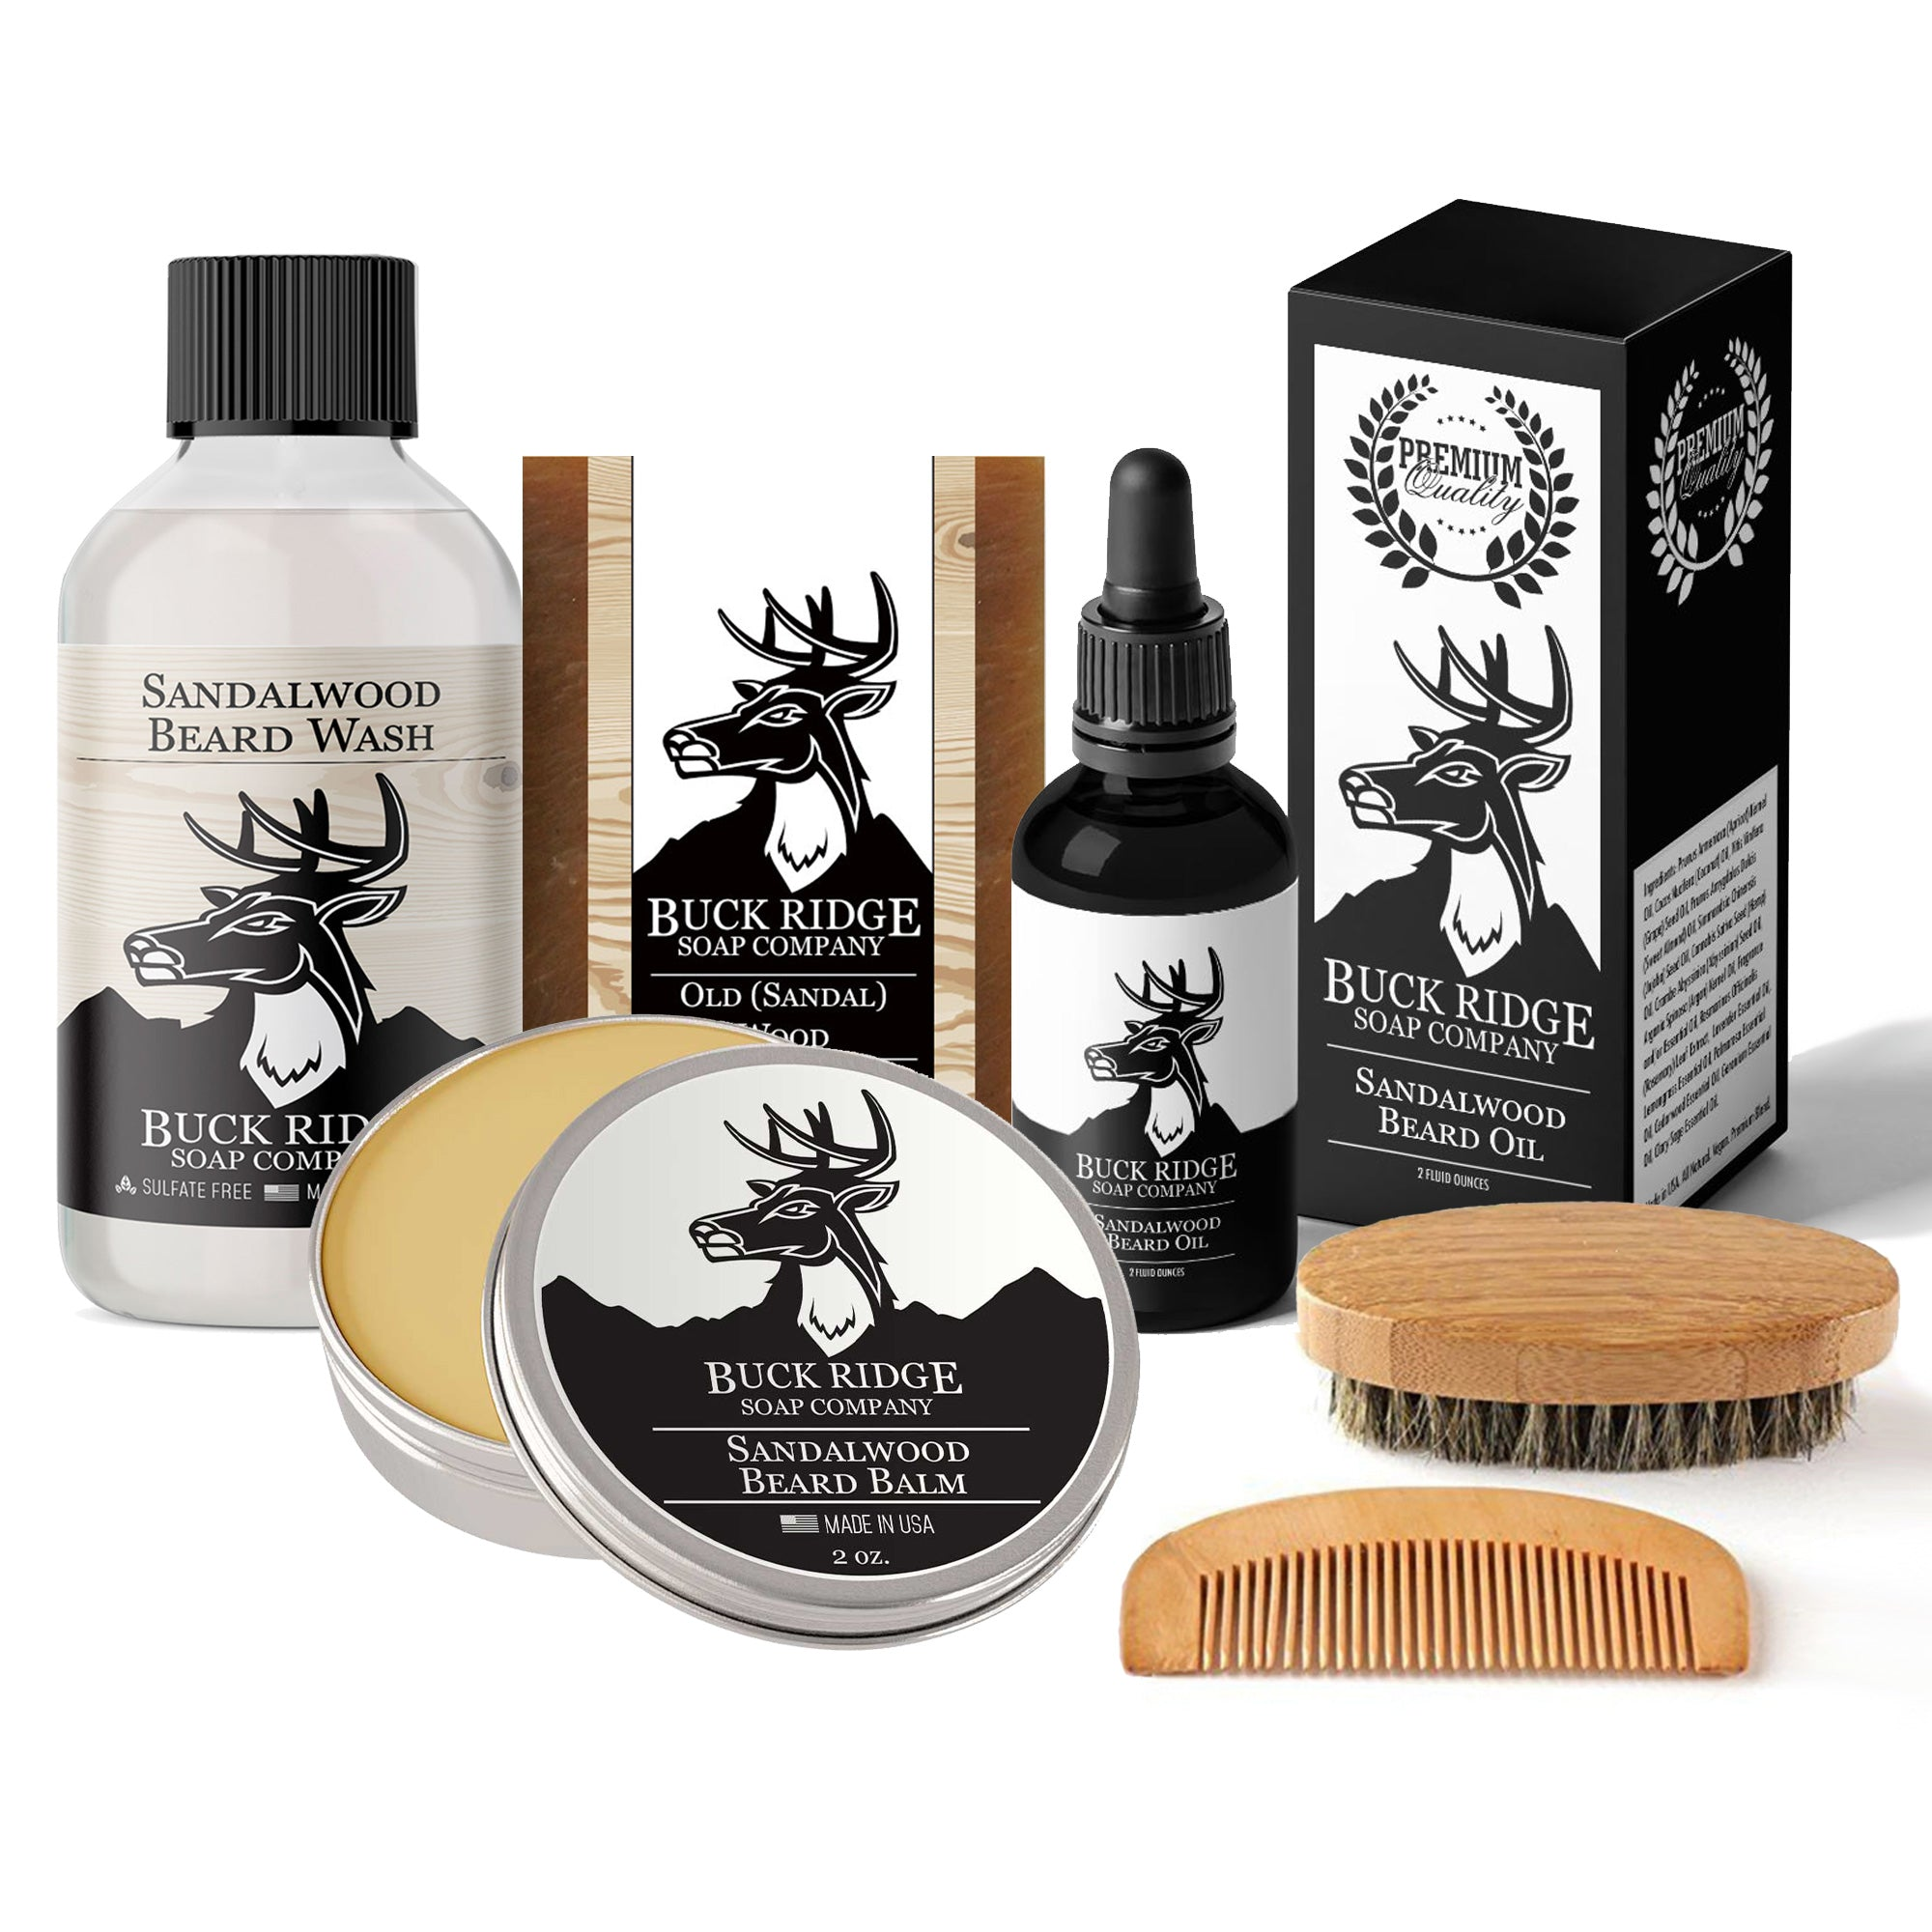 Buck Ridge Grooming & Trimming Set™: All Natural Beard and Body Care Gift Sets